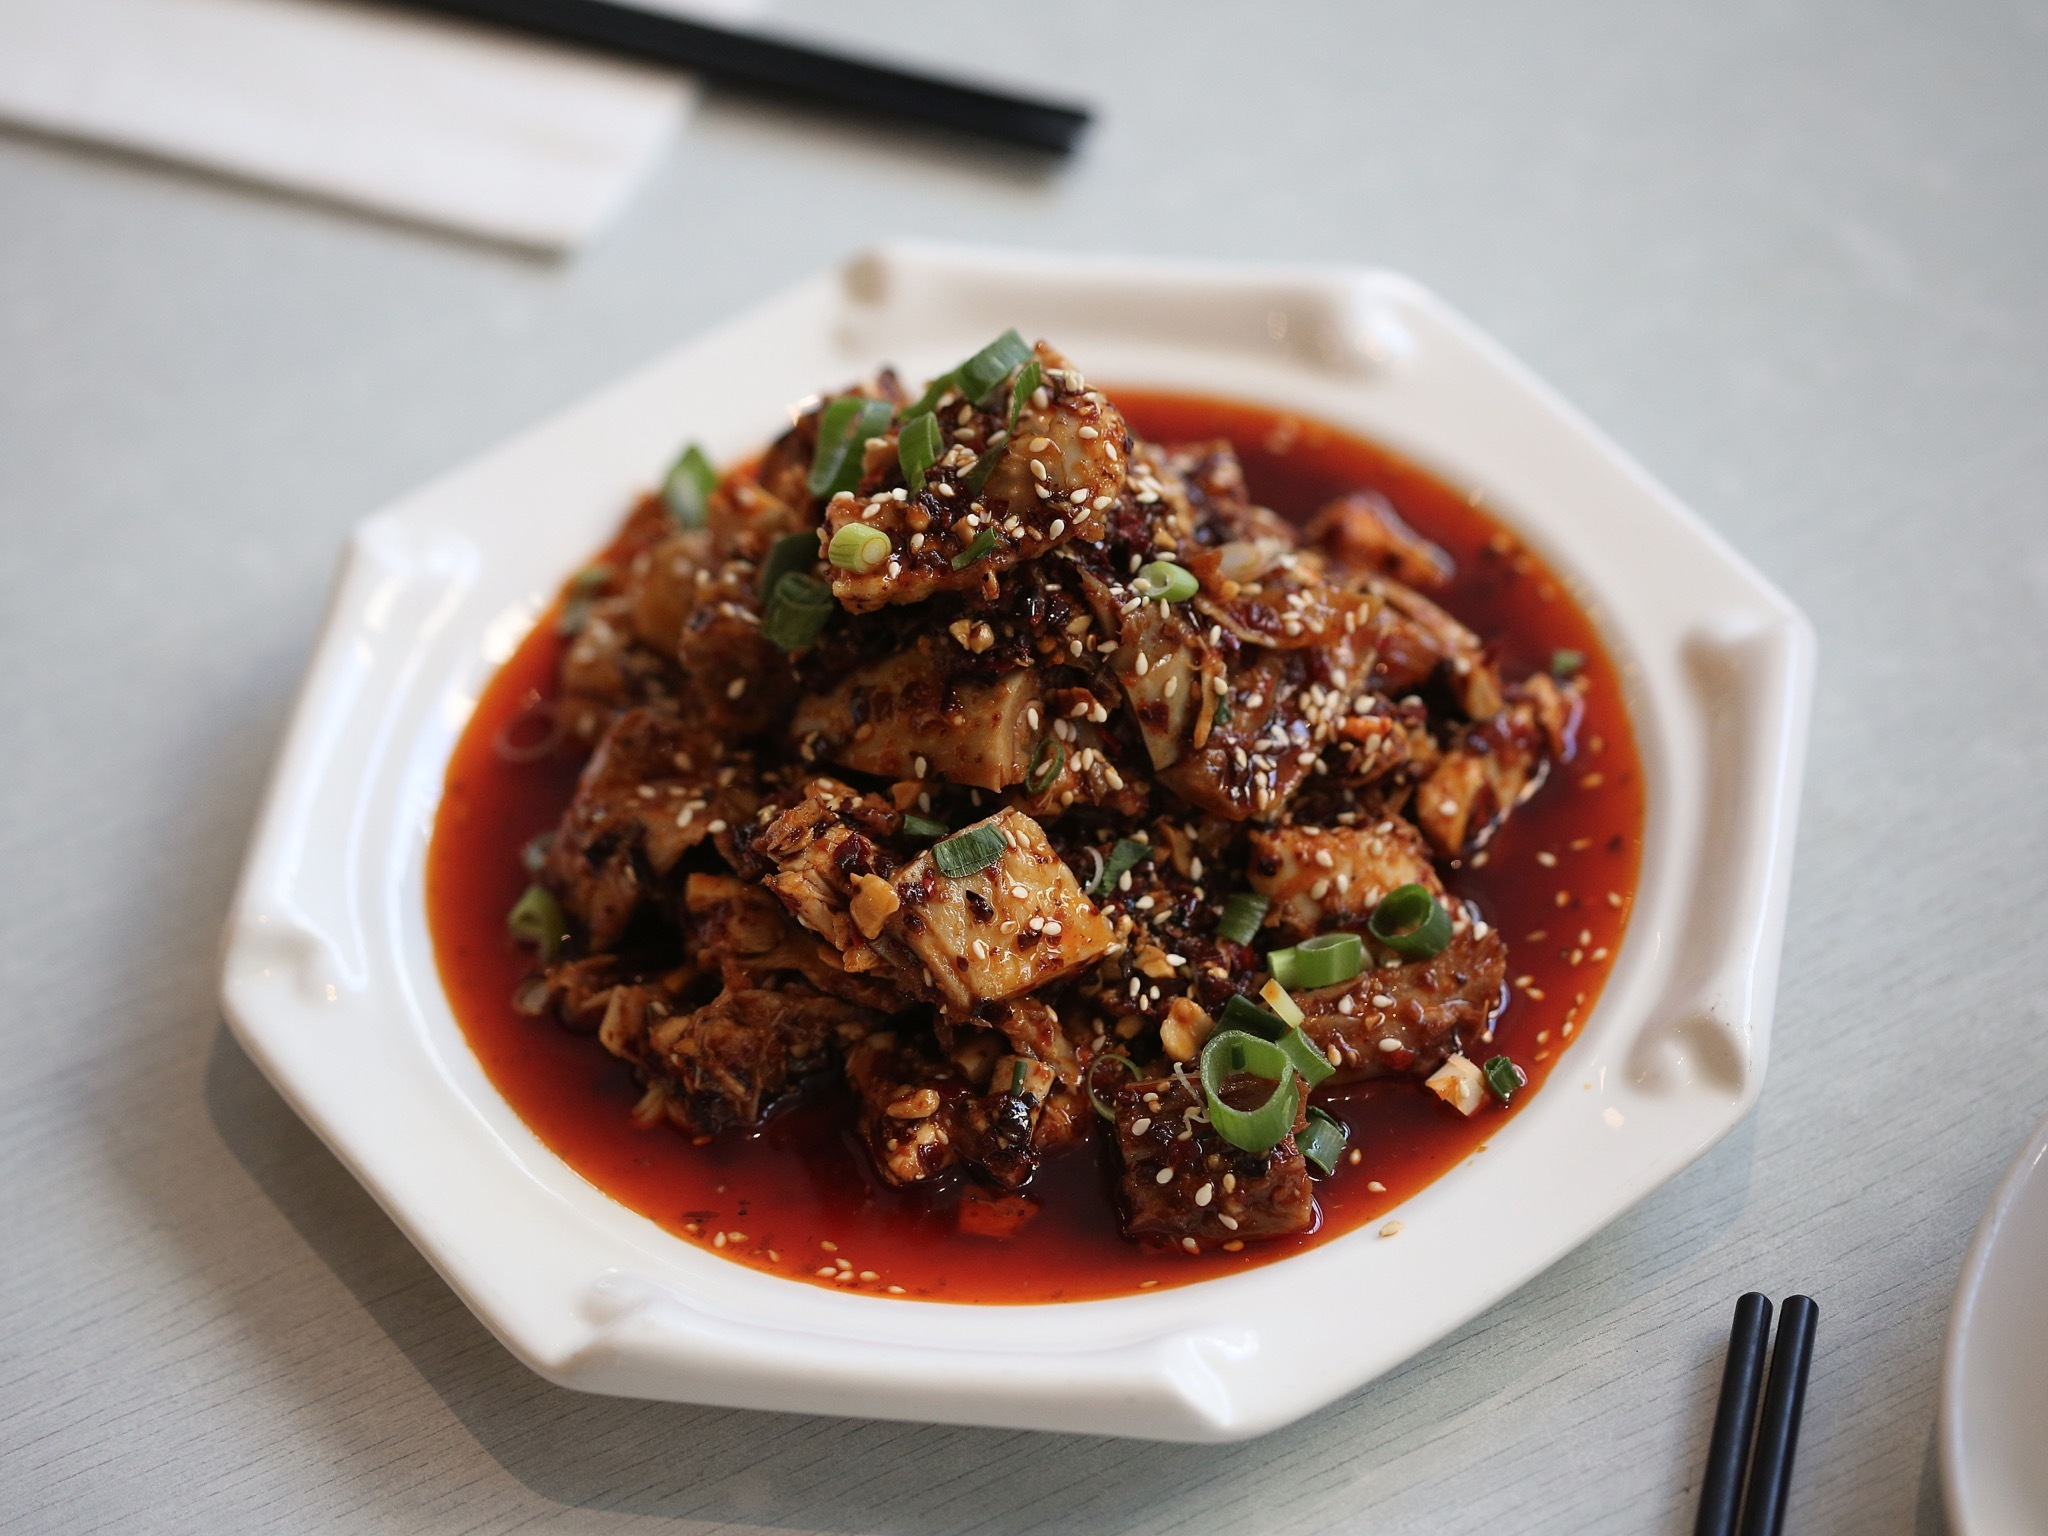 The best restaurants for spicy food lovers